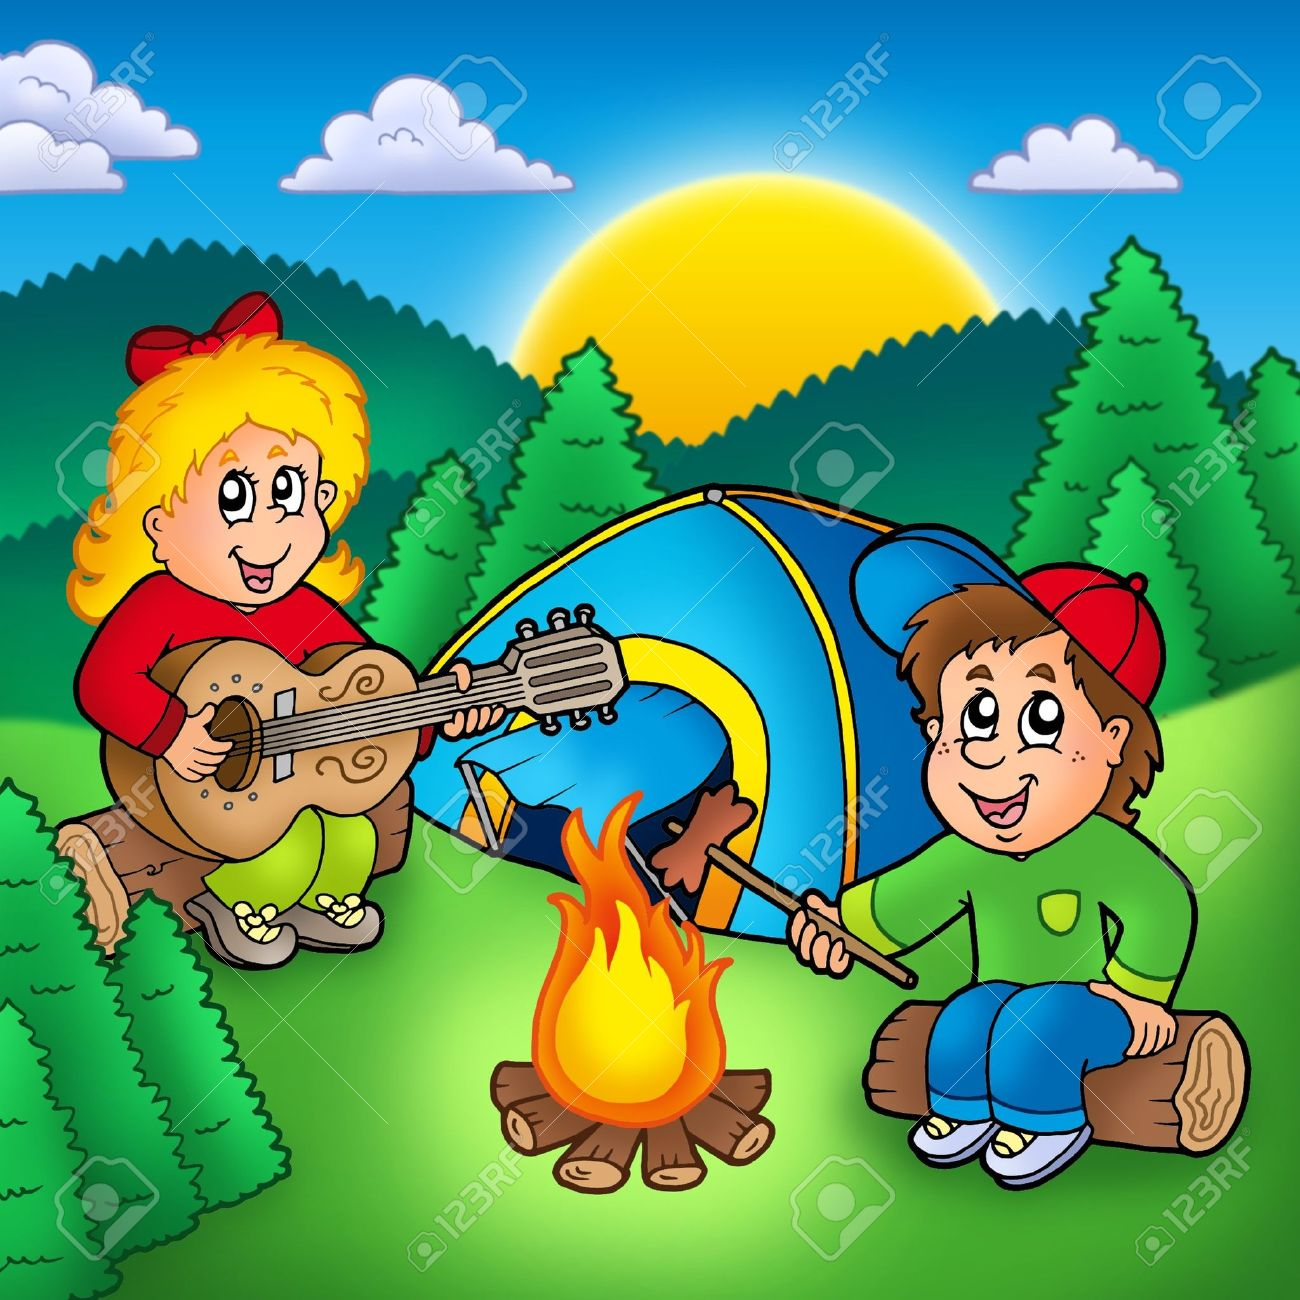 Two camping kids - color illustration. Stock Photo - 7012020